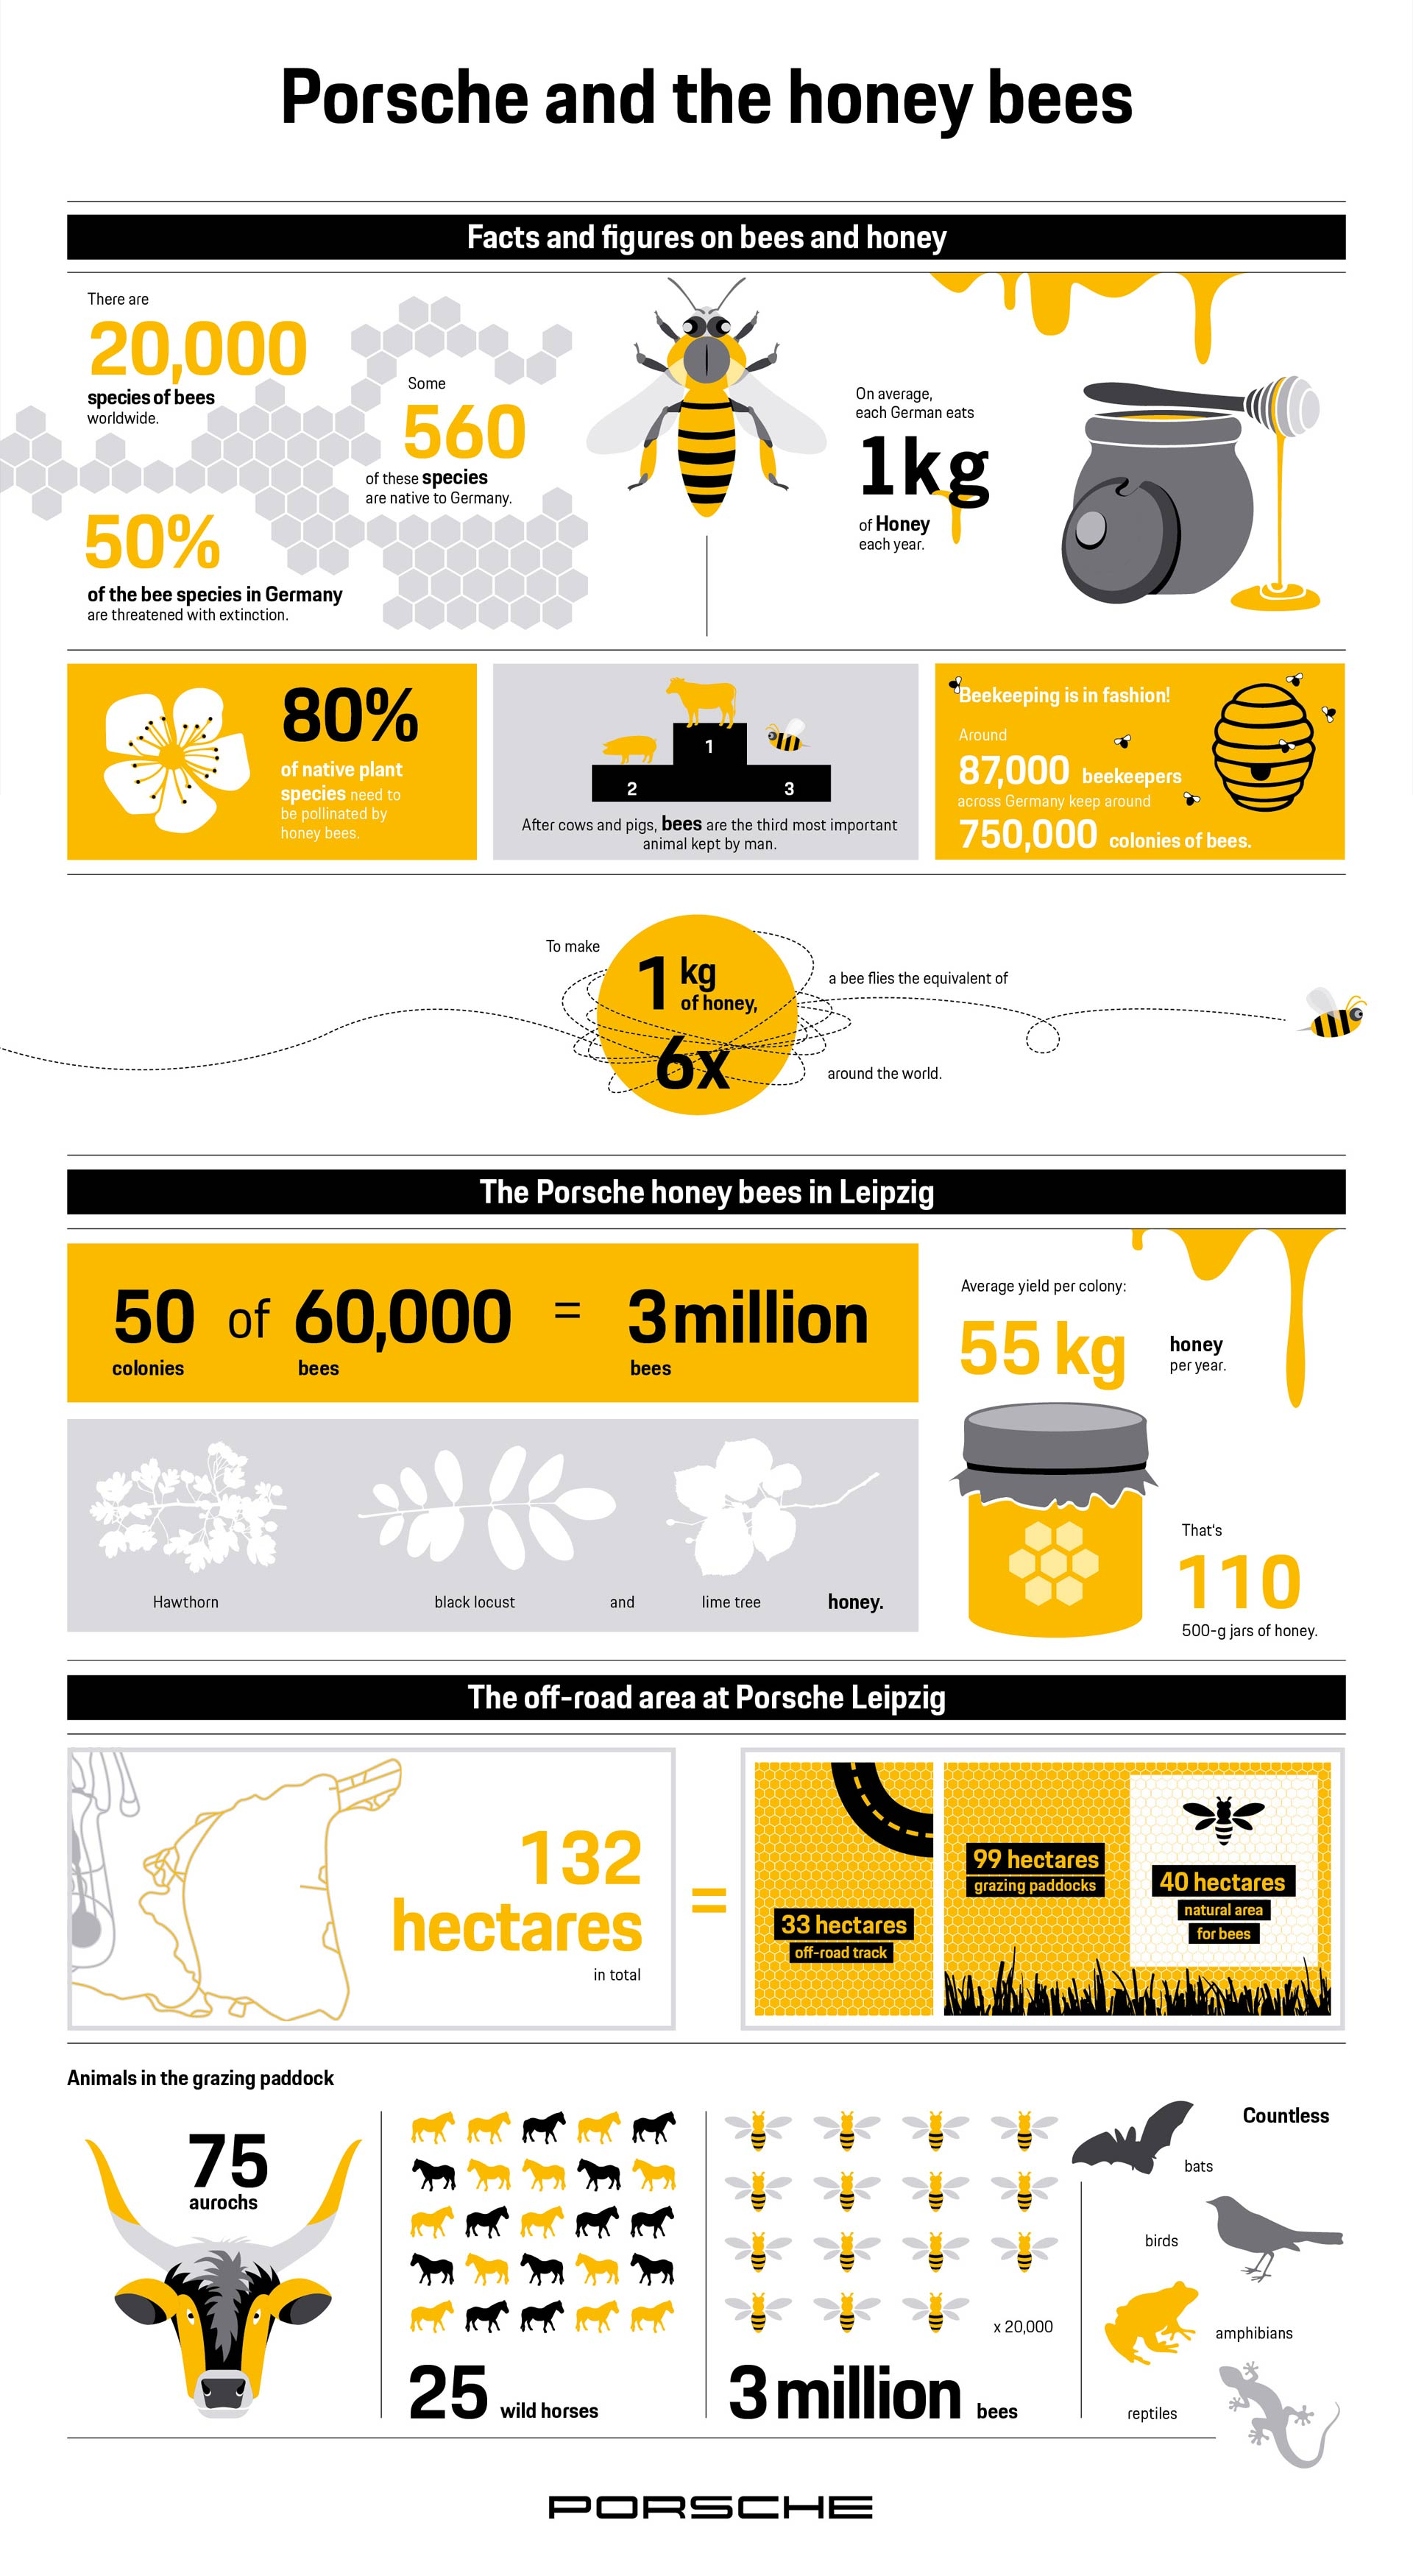 Porsche-Leipzig-Honey-Bees-infographic